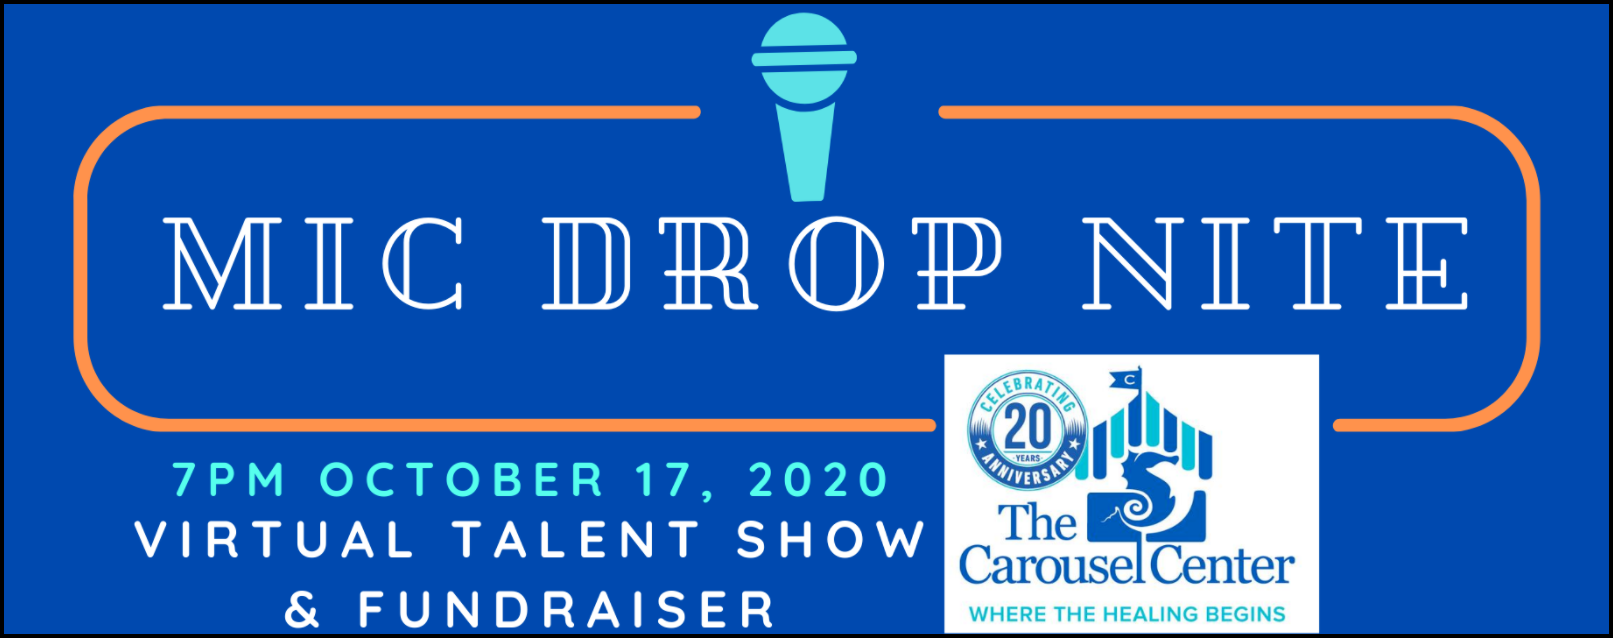 A talent show offers a low-pressure way for participants to fundraise. The Carousel Center's Mic Drop Nite is a creative fundraising appeal that relies on participant skills to raise money.